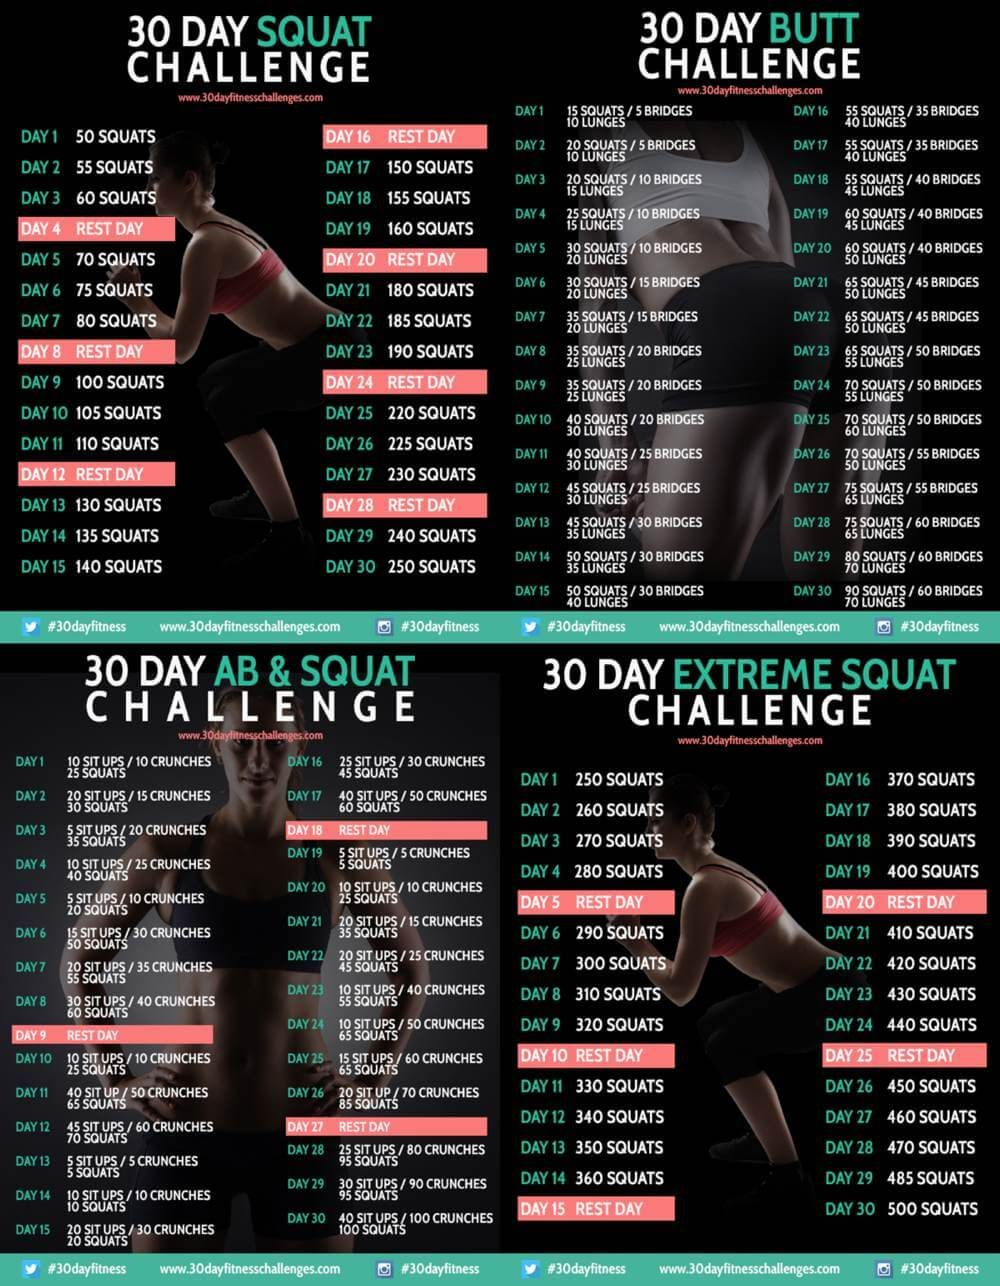 30 Day Squat Challenges | Rebel Dietitian